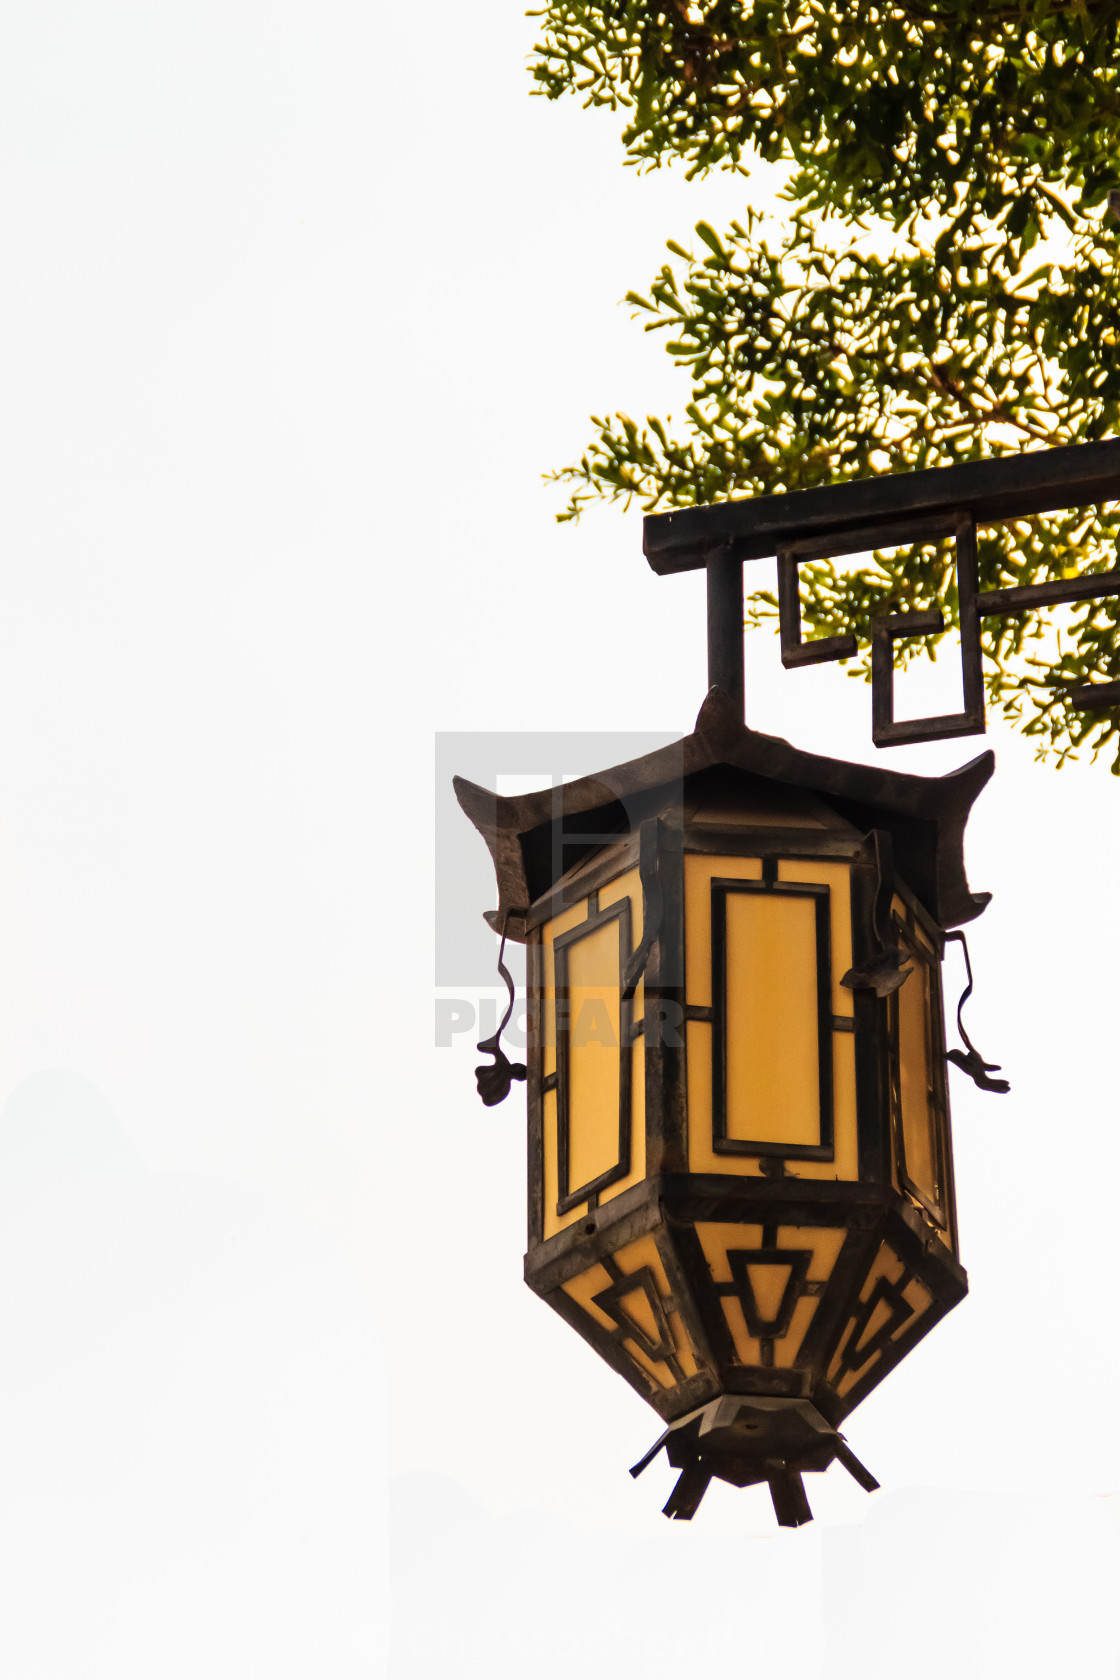 Beautiful Old Yellow Chinese Lantern Lamp Under Tree On The White Isolated License Download Or Print For 1 24 Photos Picfair